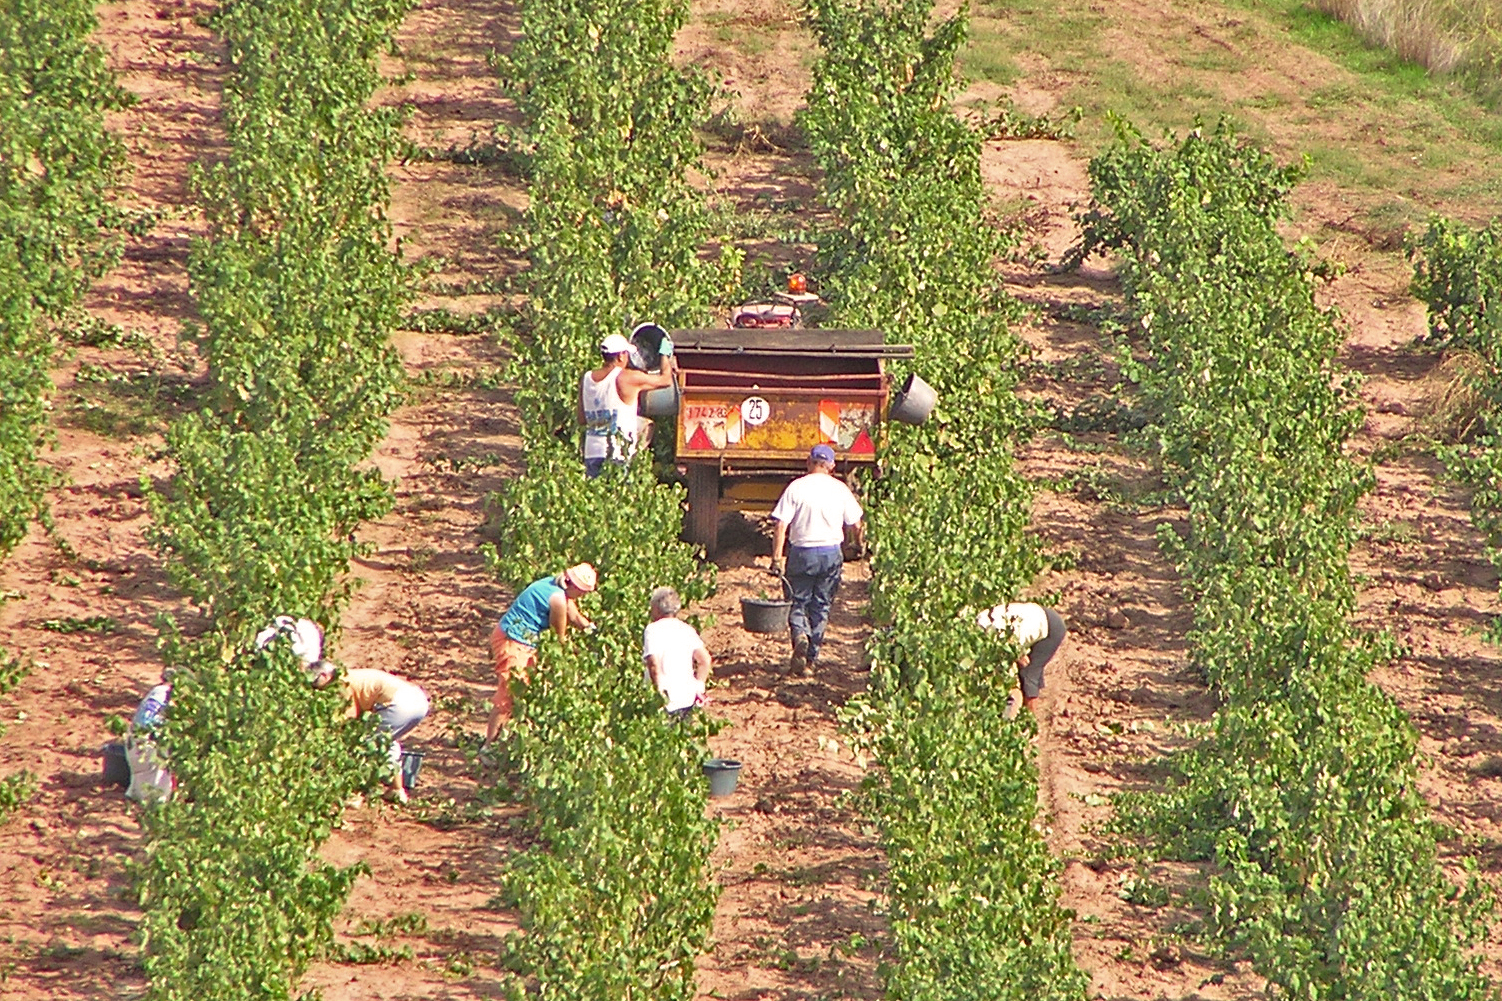 Grape pickers in France